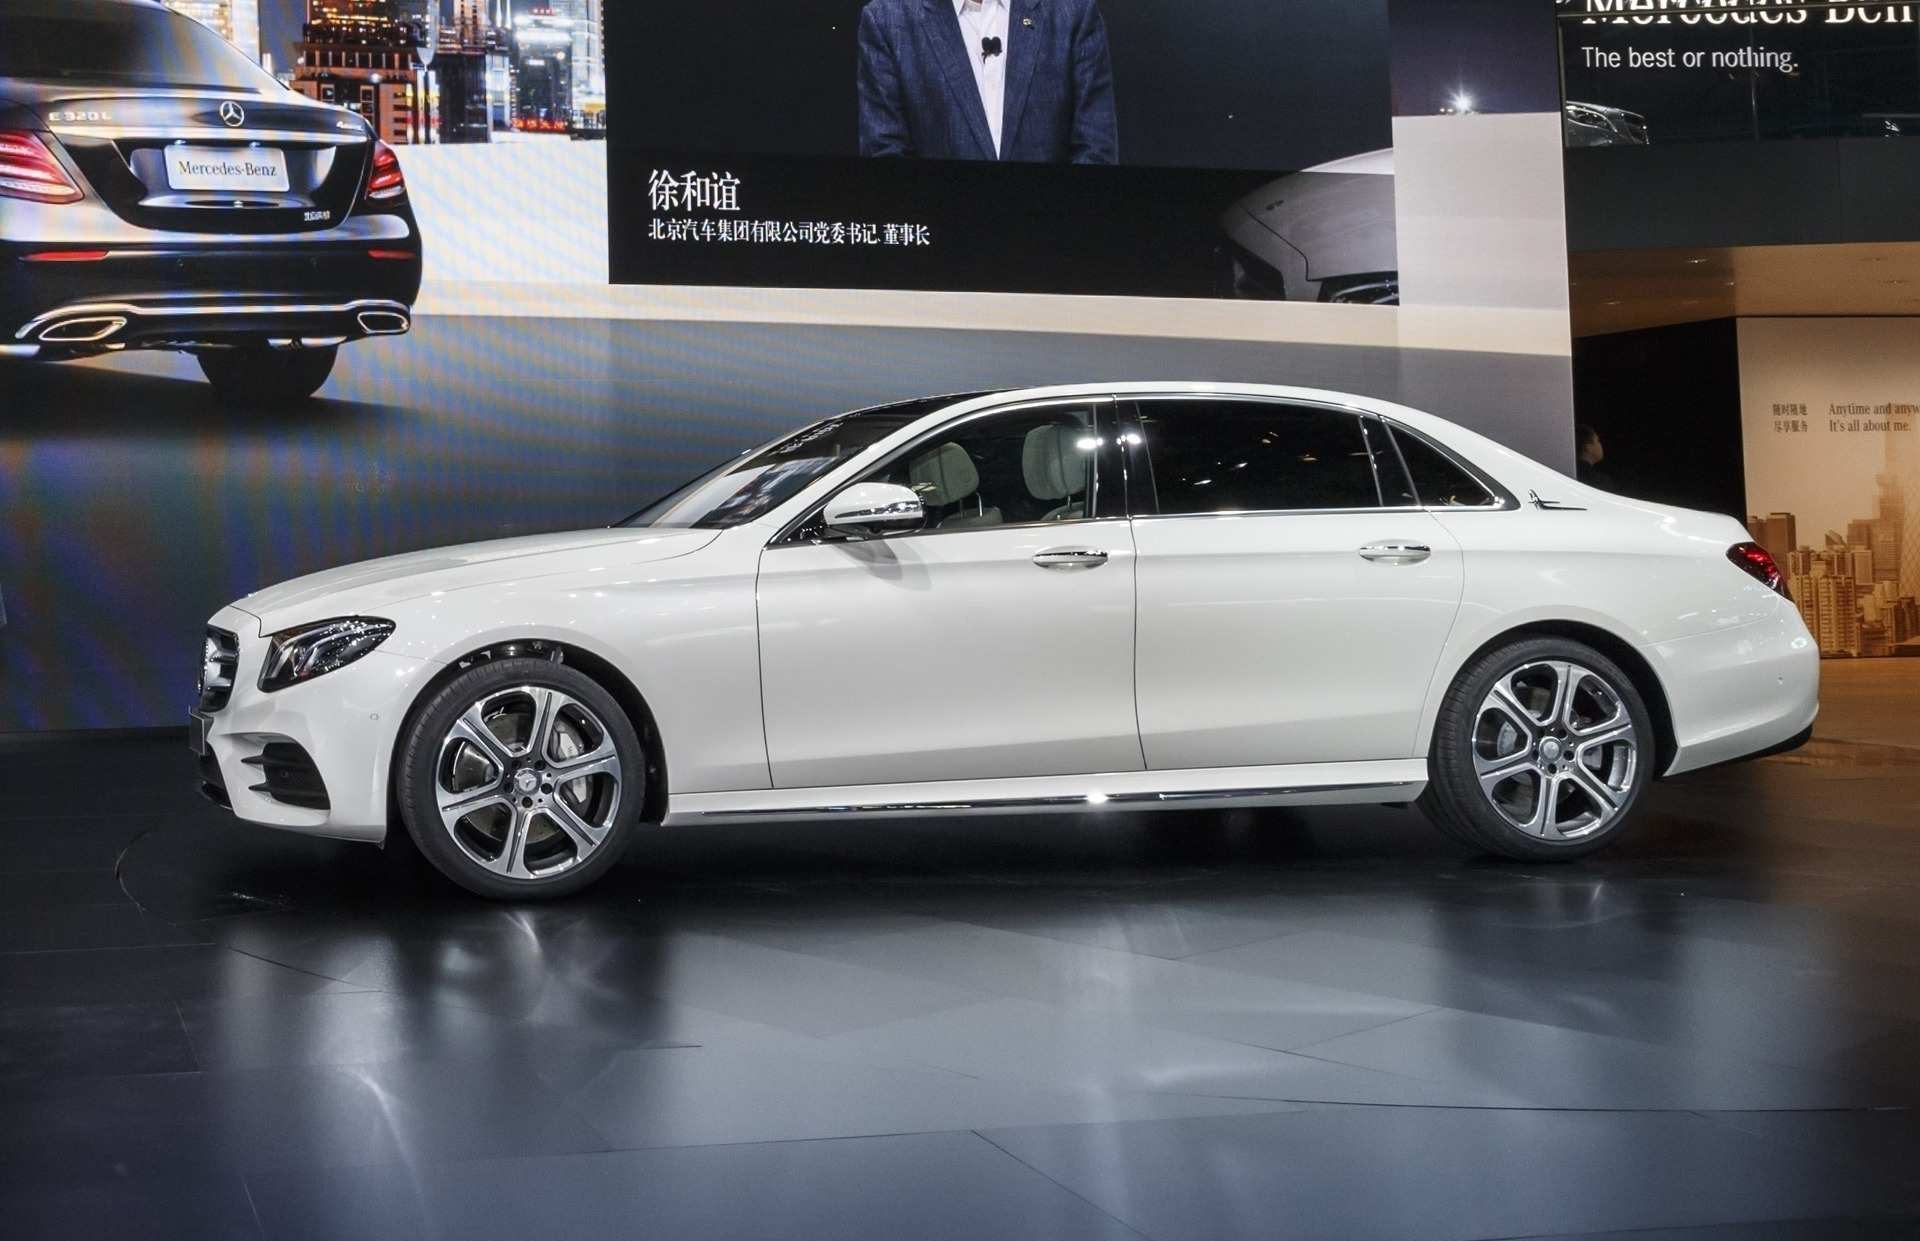 38 Best Mercedes 2019 E Class Price Images